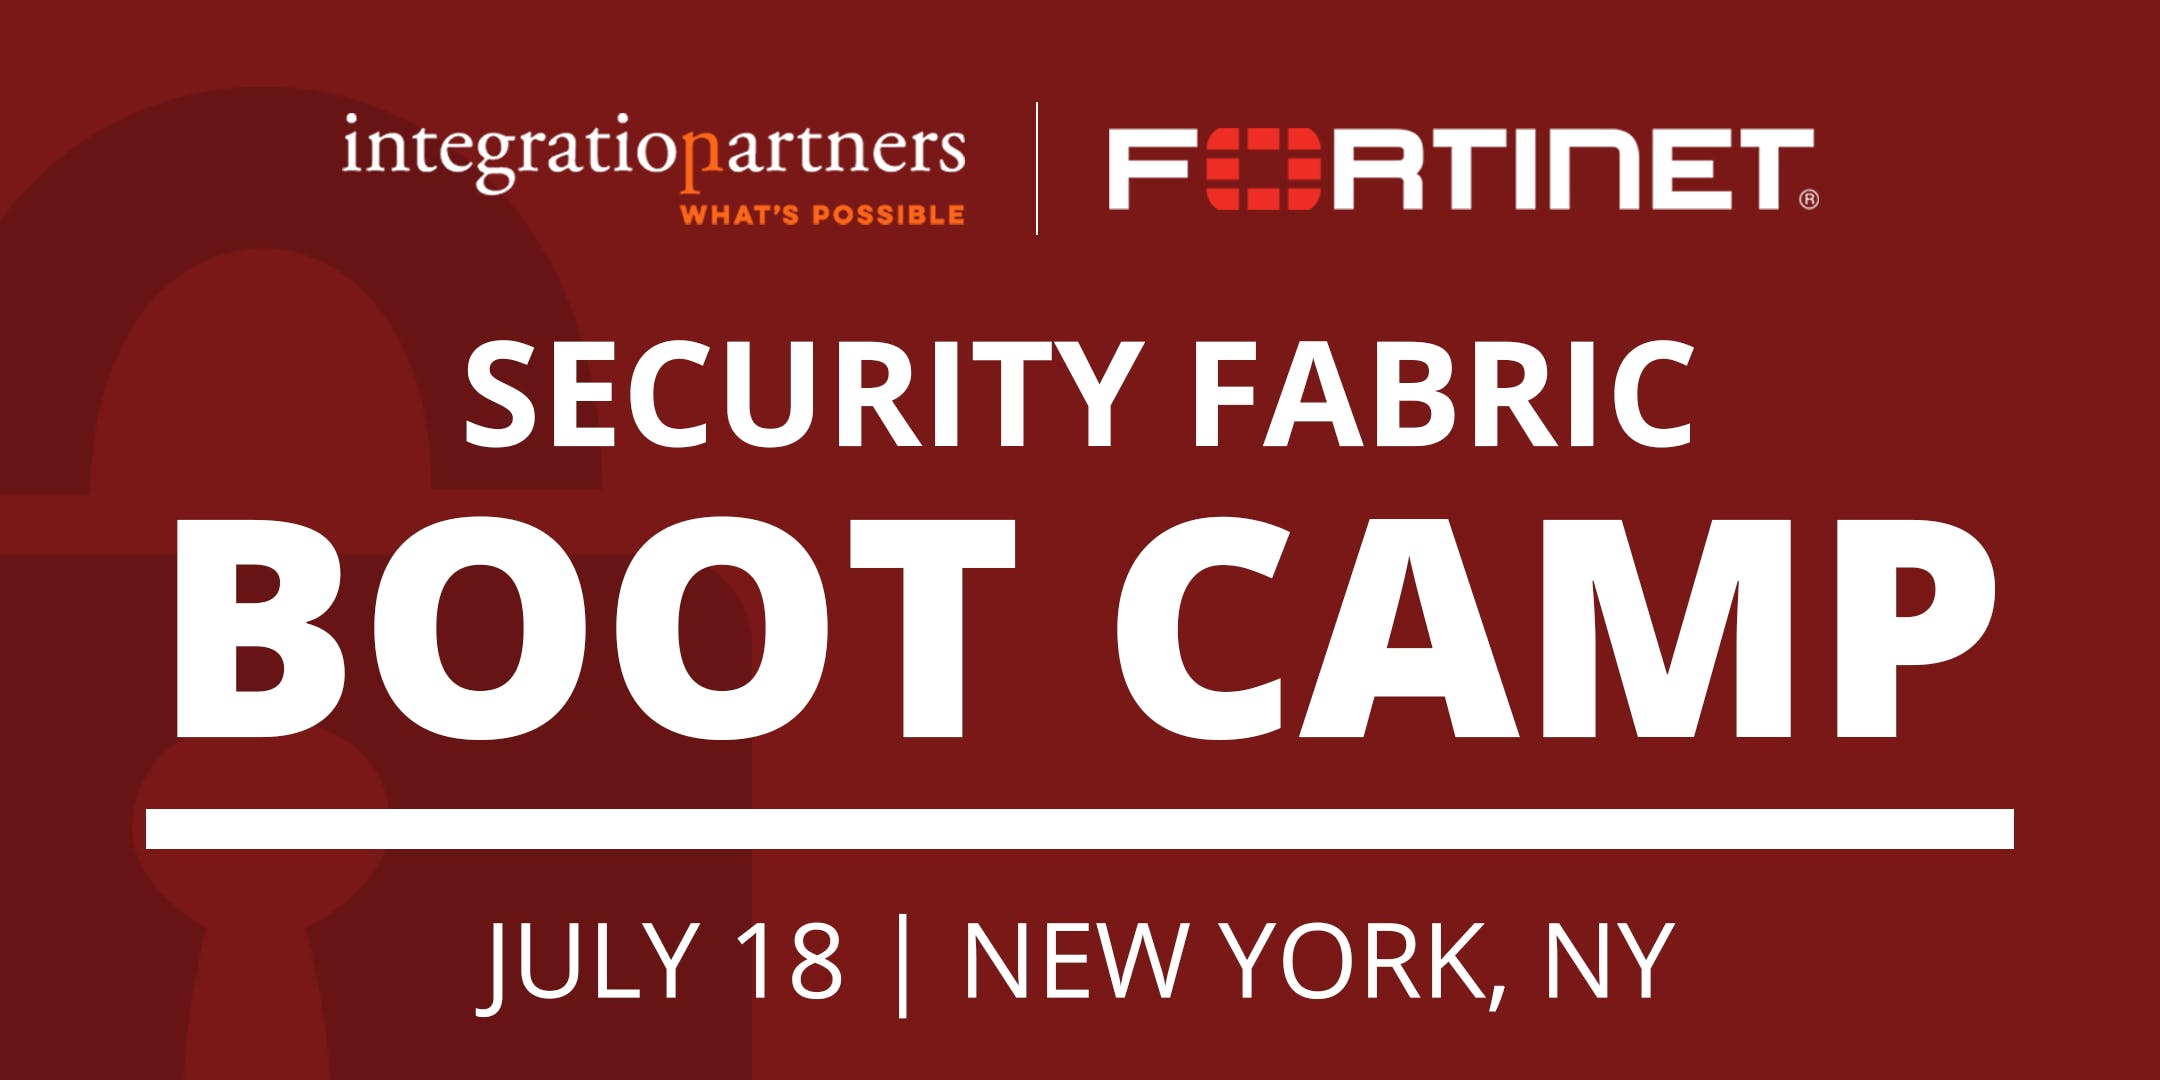 Fortinet Security Fabric Bootcamp | New York, NY